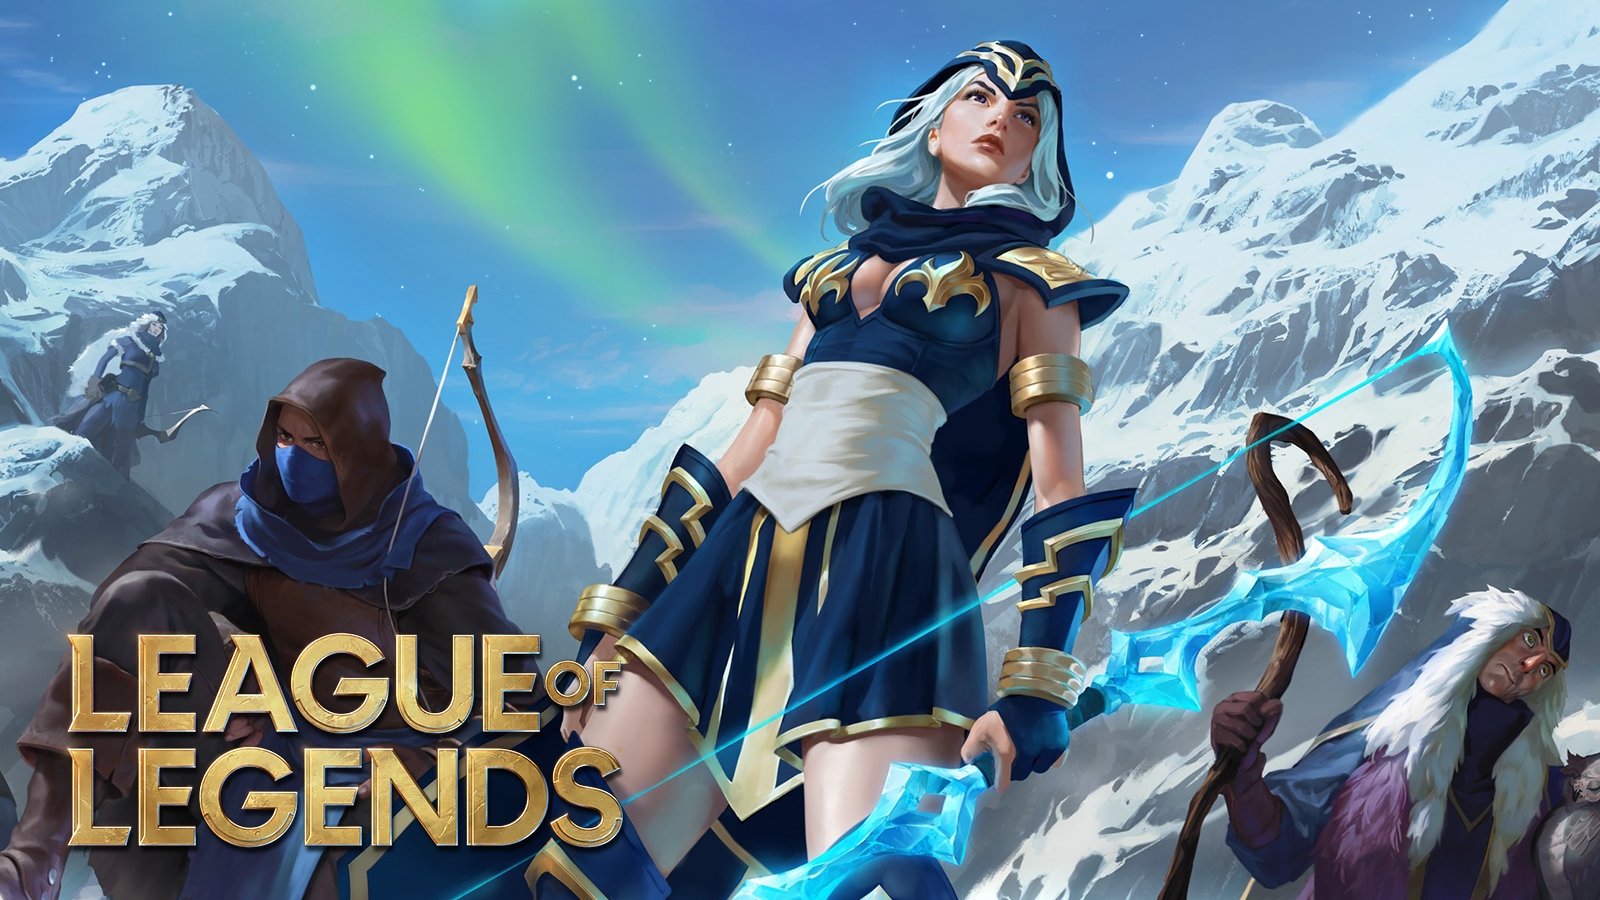 Ashe stands ready for the new League of Legends MMO RPG title coming 2023.